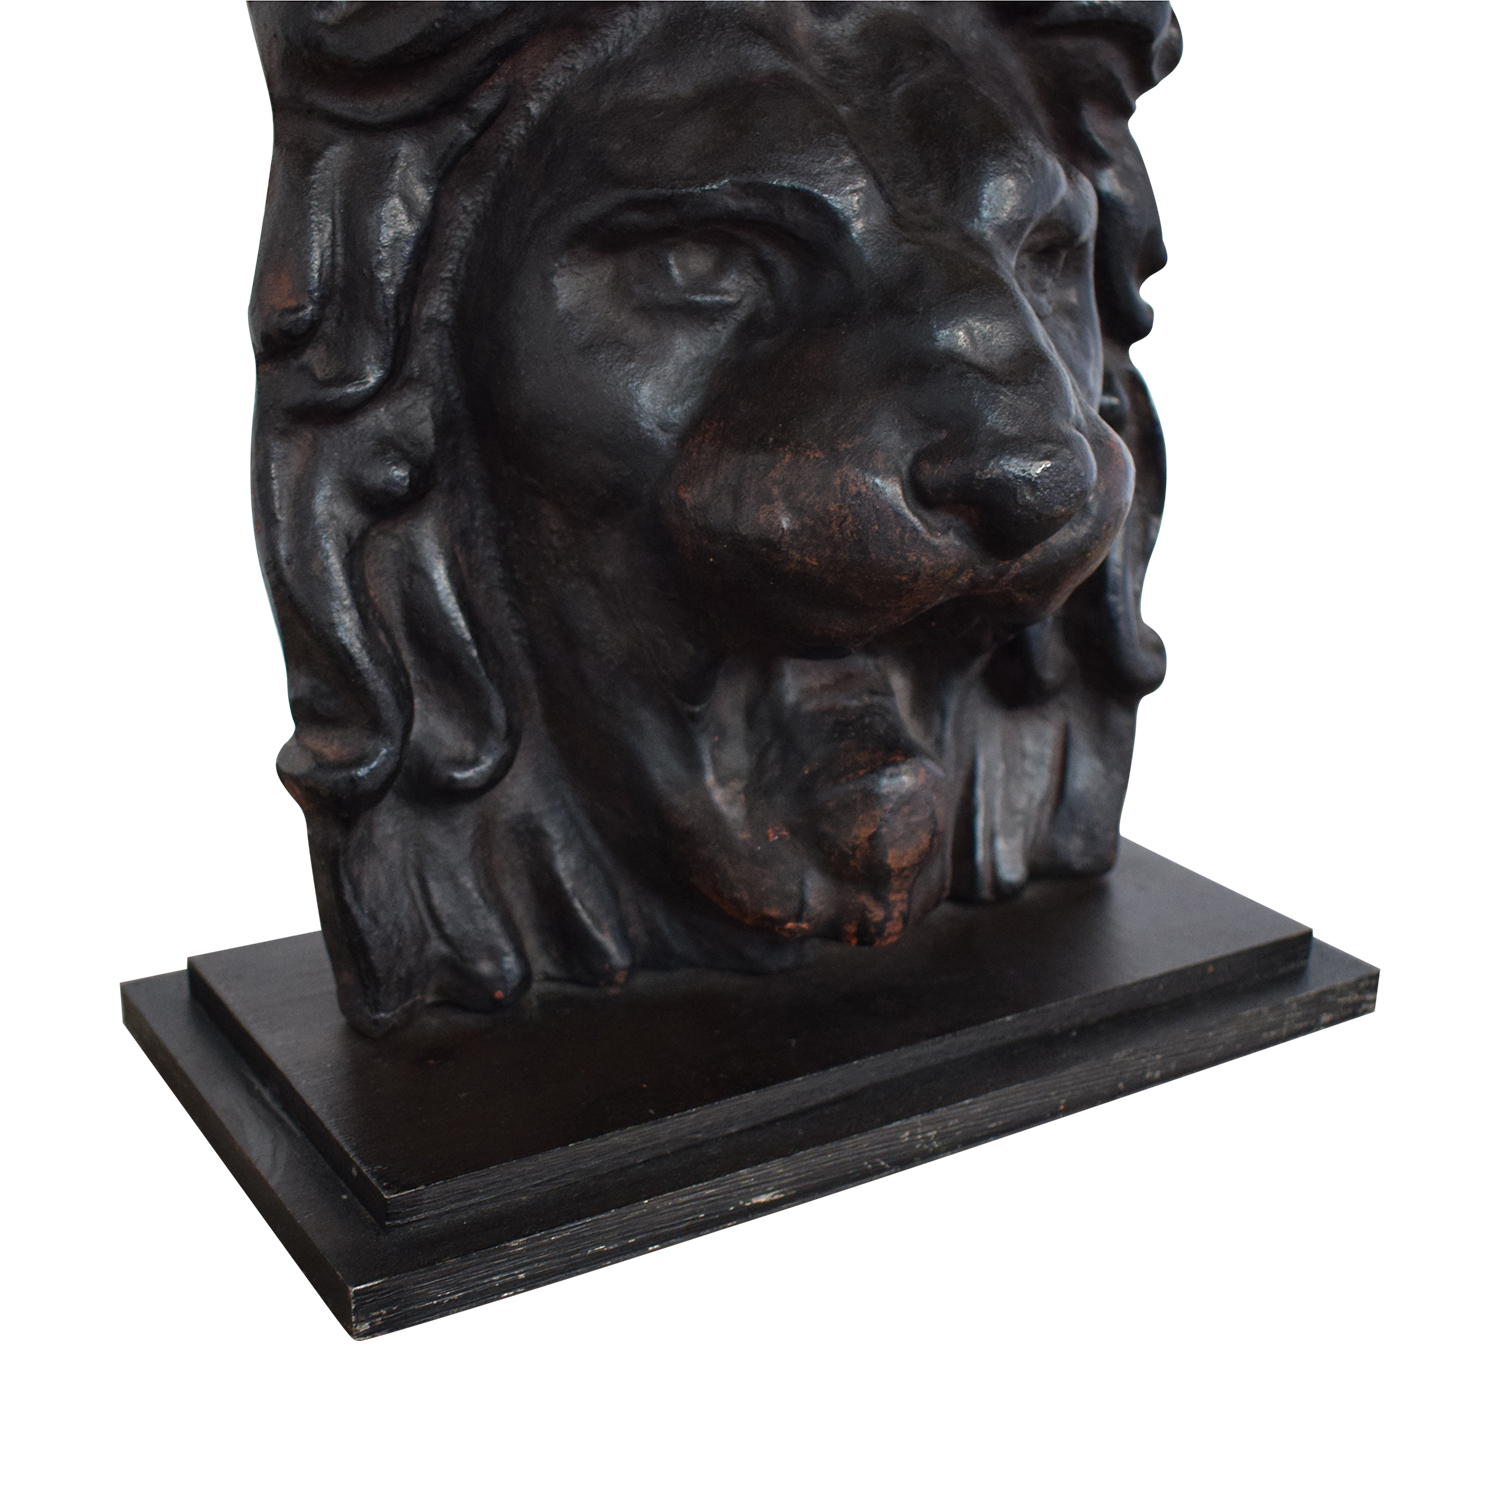 Restoration Hardware Restoration Hardware Lion's Head Table Lamp second hand